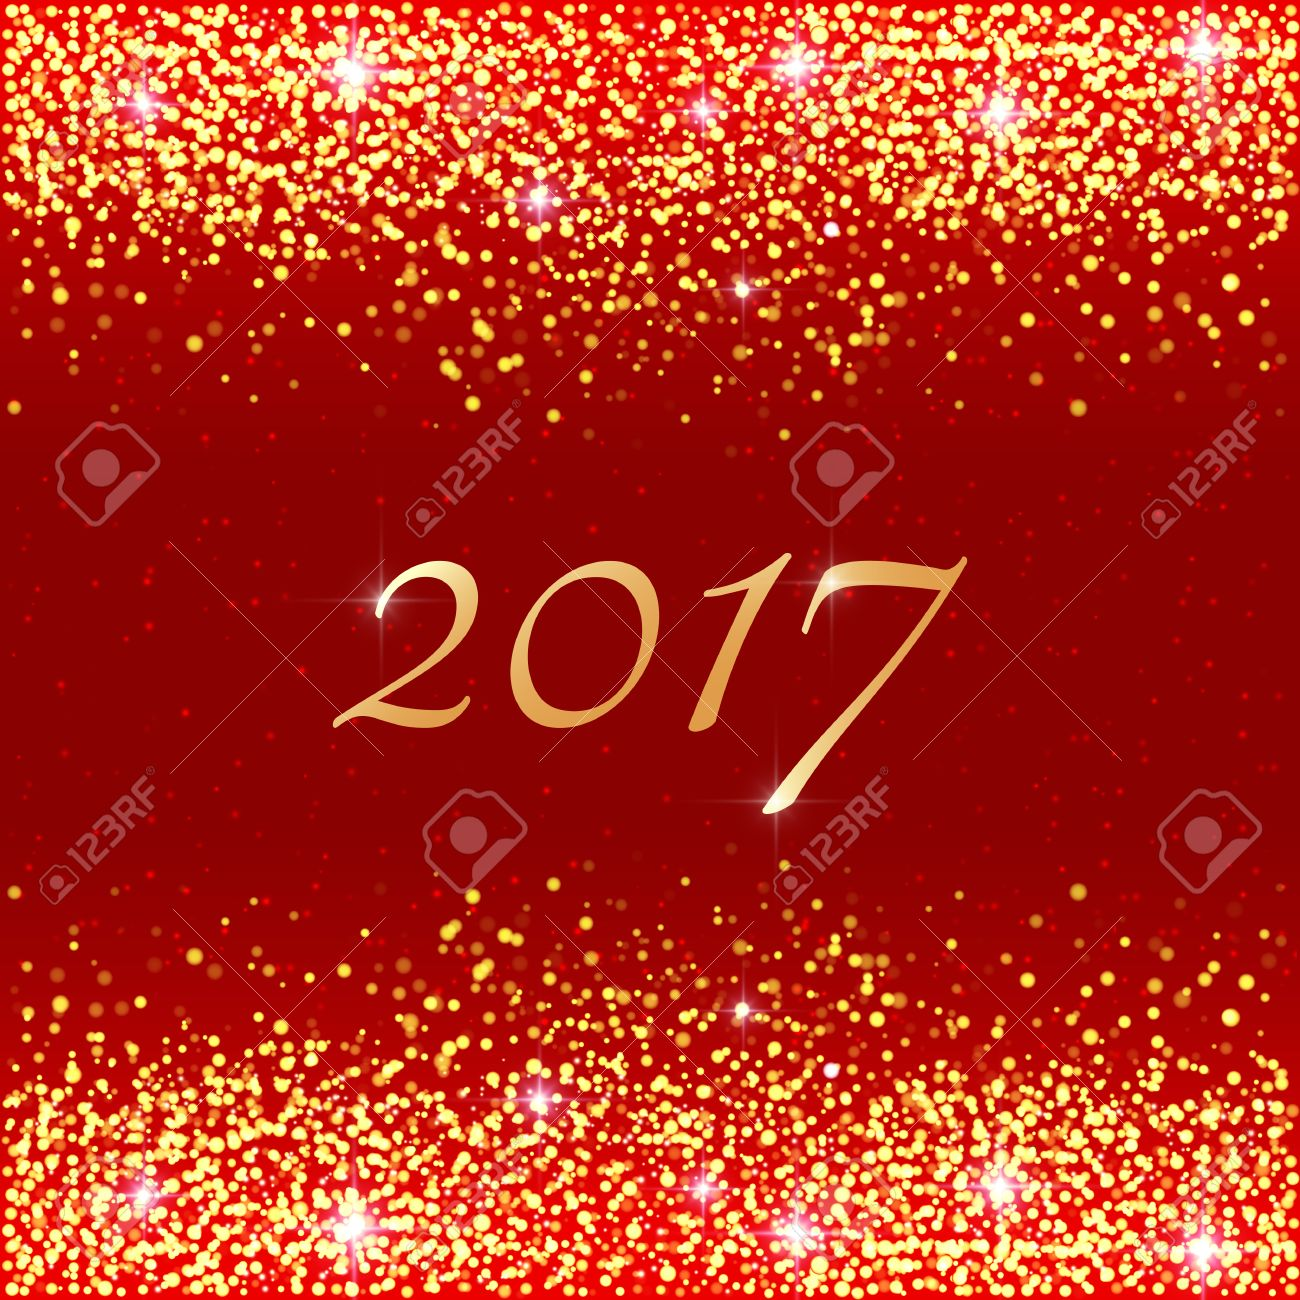 Happy New Year 2017. Vector Holiday Template With Sparkles On Red  Background. Gold Glitter